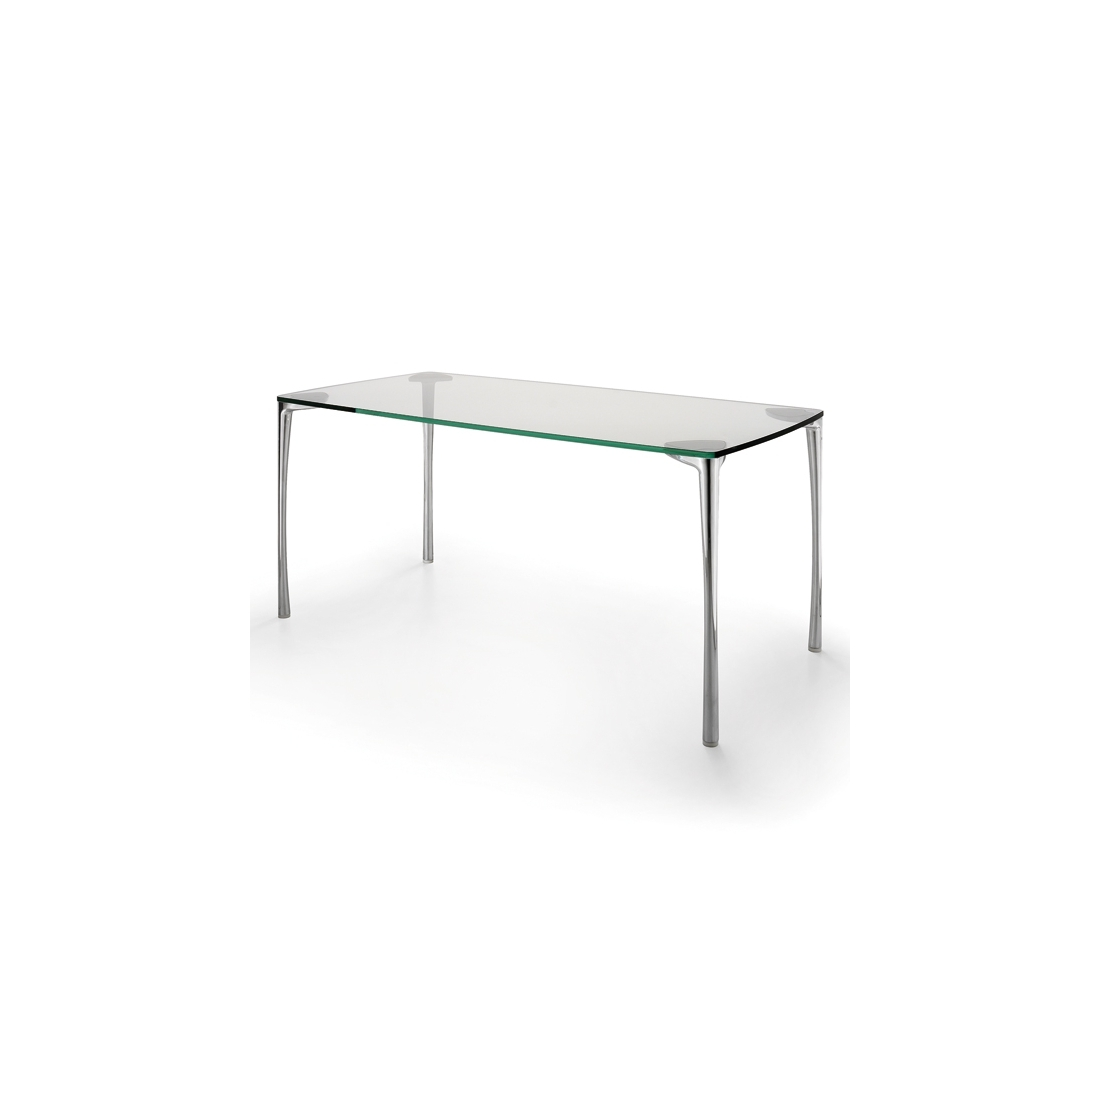 Table Salle A Manger Design Of Table Salle A Manger Elephas Infiniti Zendart Design